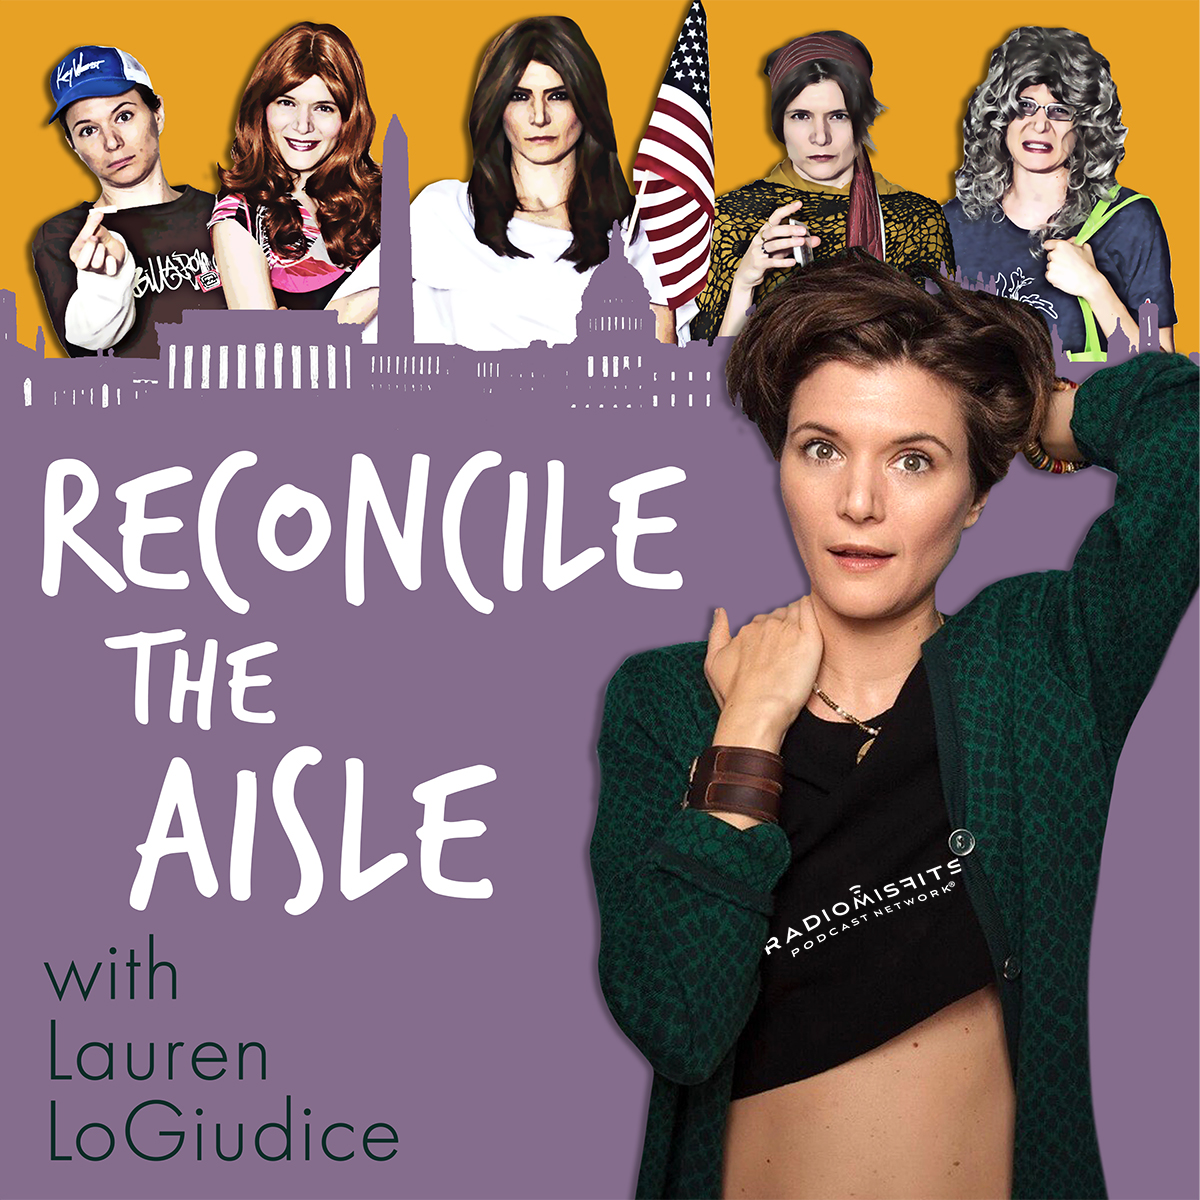 Find our newest podcast, #ReconcileTheAisle with @laurenlogi on these platforms now!  #ApplePodcasts -> https://t.co/CRS9VIFySy #GooglePodcasts -> https://t.co/iylJKvPXRA #Spotify -> https://t.co/nu0RarOgK3 #TuneIn -> https://t.co/UT8hlVEadg #Stitcher -> https://t.co/ji73Iwc1j7 https://t.co/dkyMyJlv9a